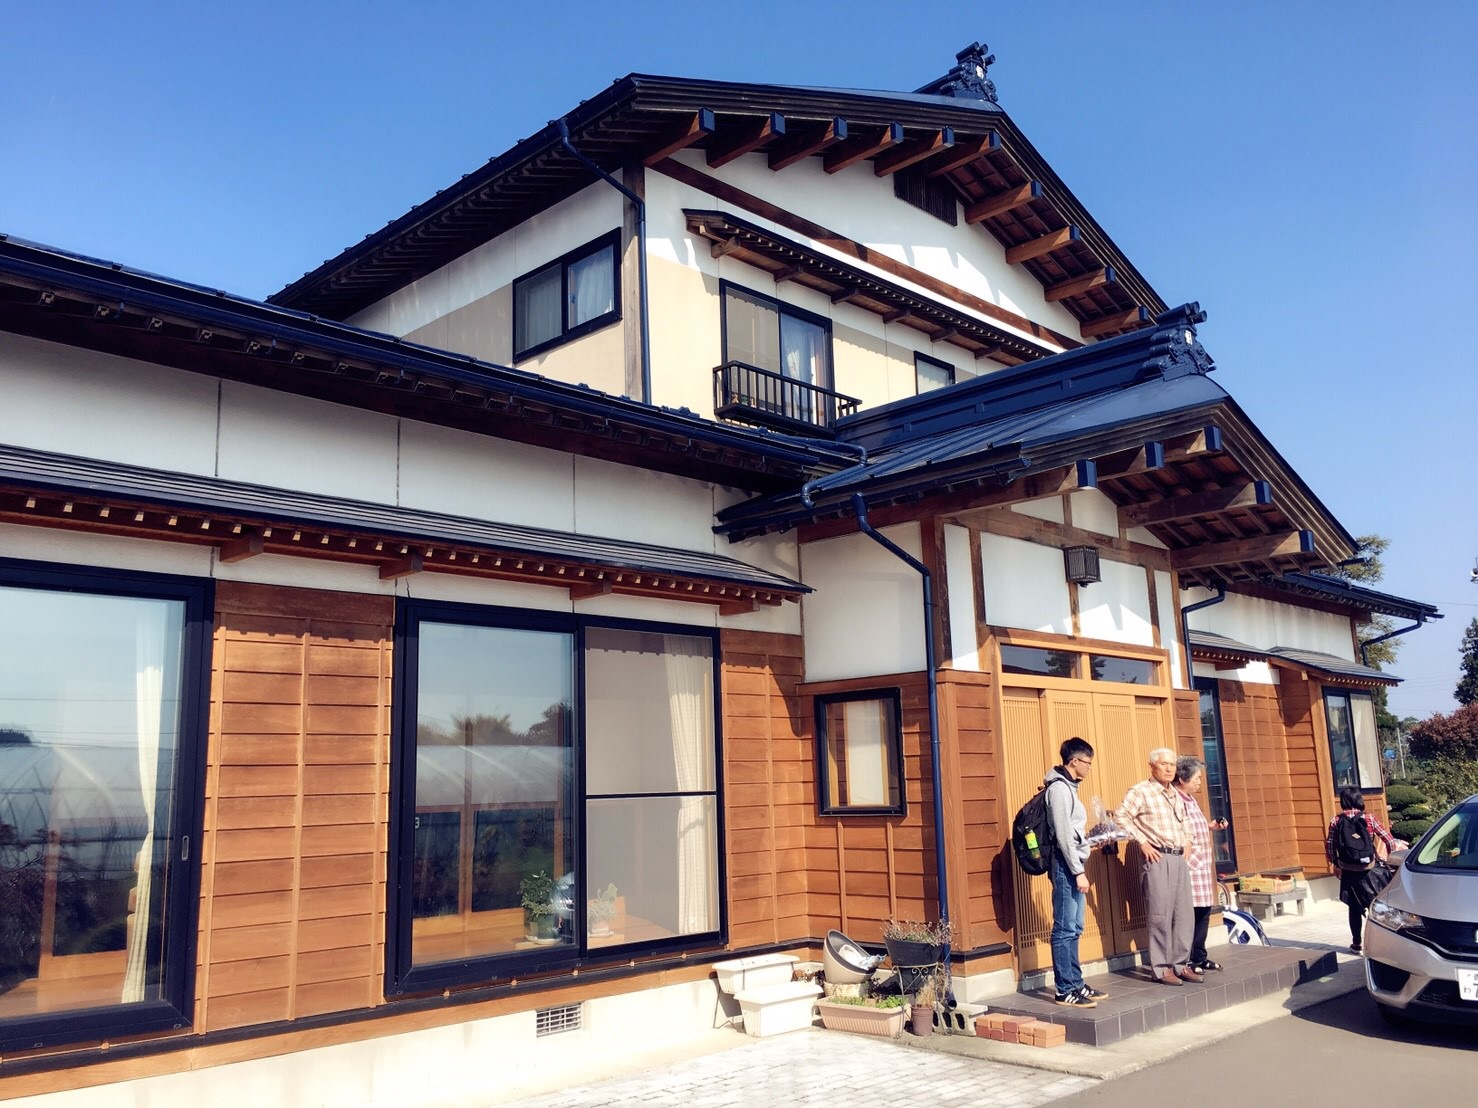 We travel to Aomori to Experience Living with Japanese